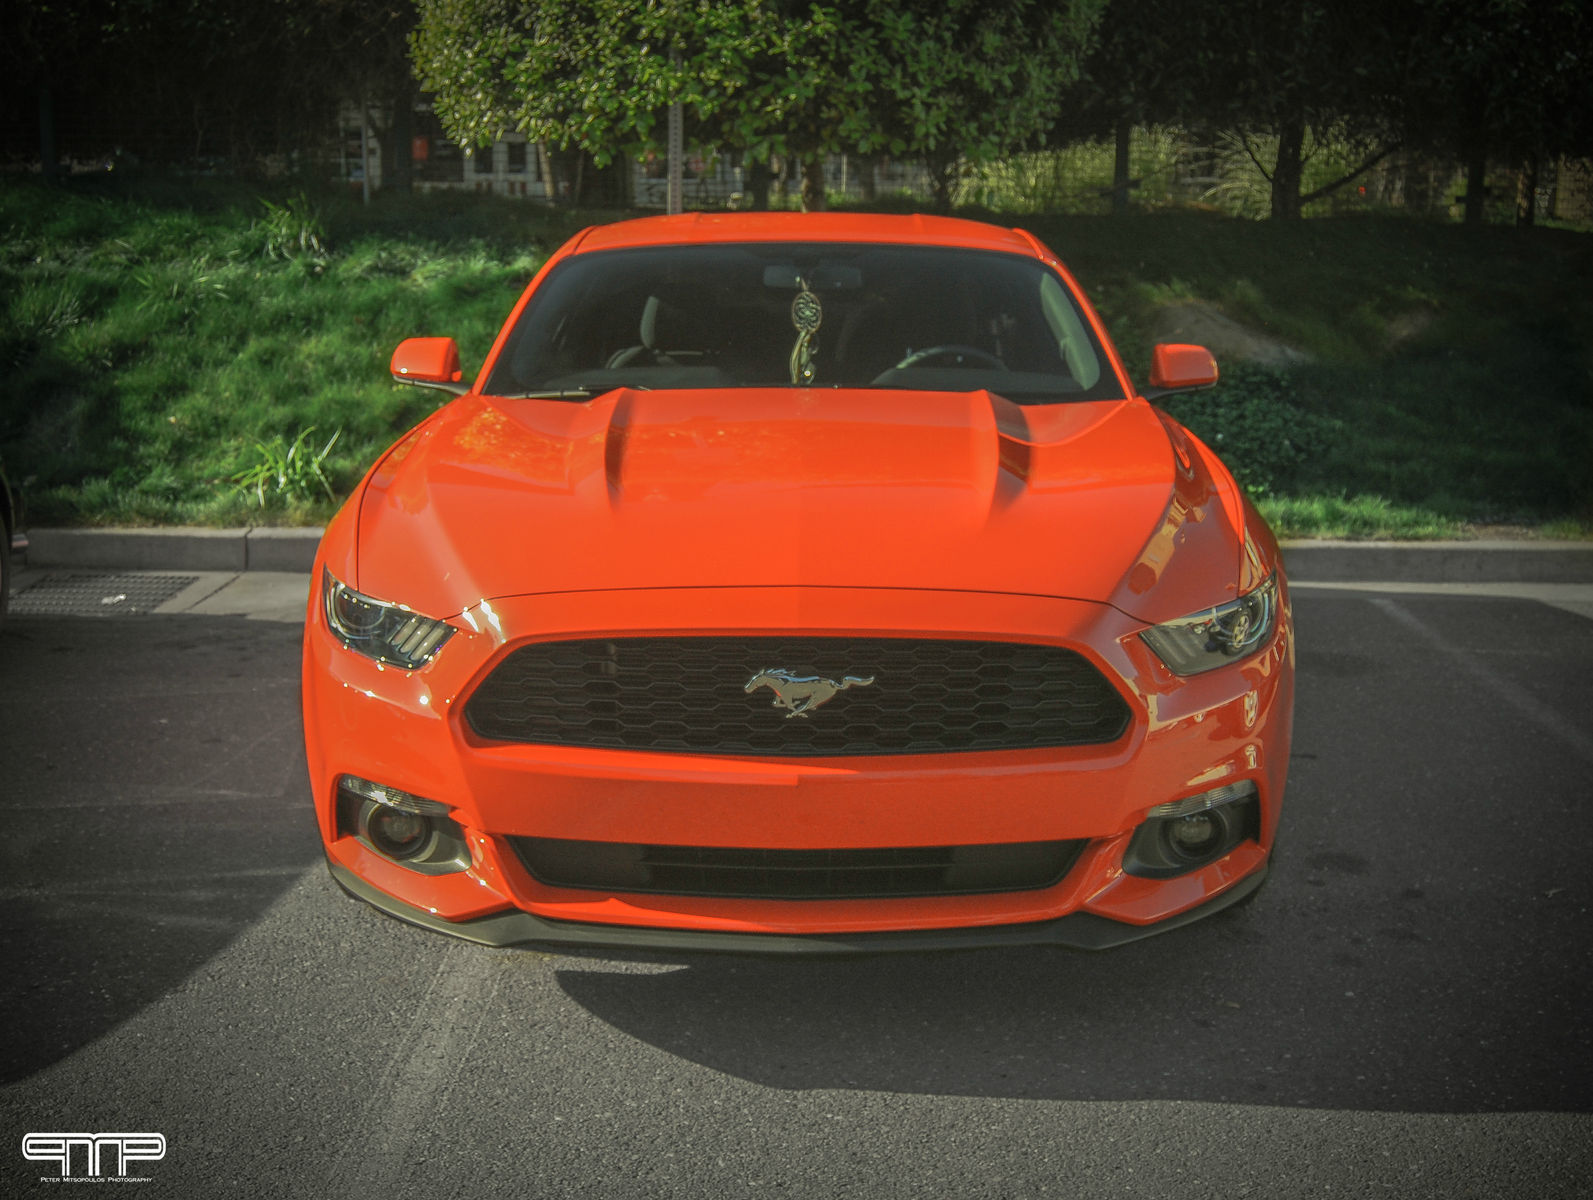 2015 Ford Mustang | 2015 Ford Mustang